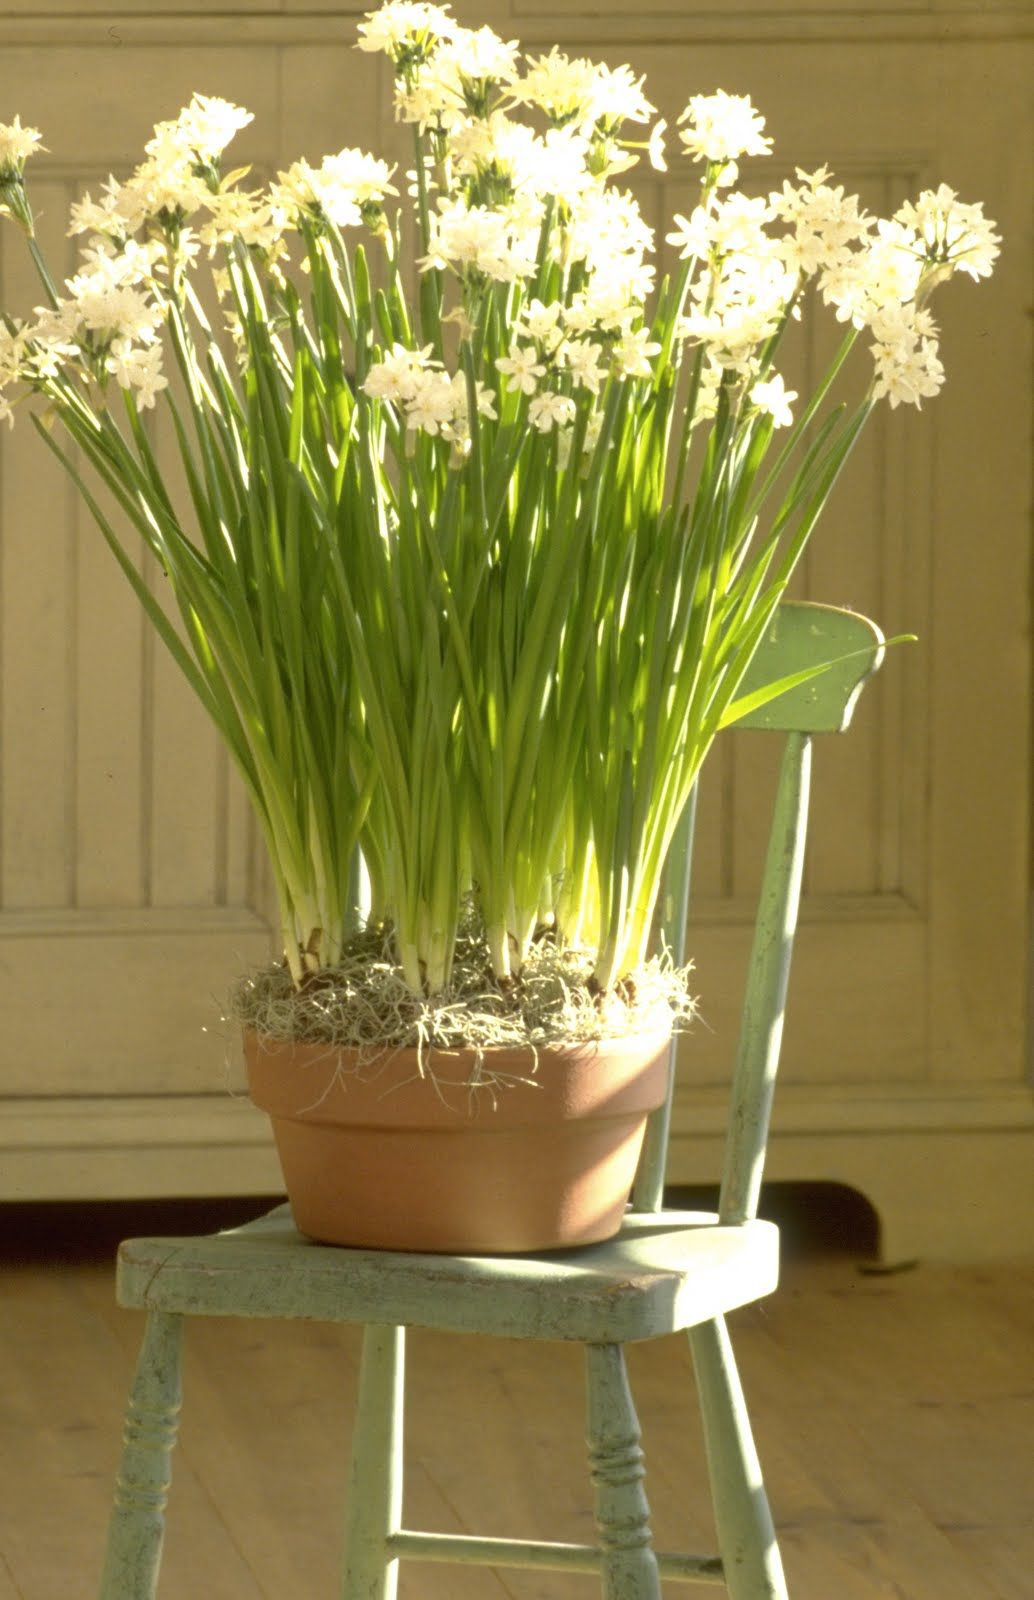 Pictures Of Paperwhites Google Search Paperwhites Pinterest